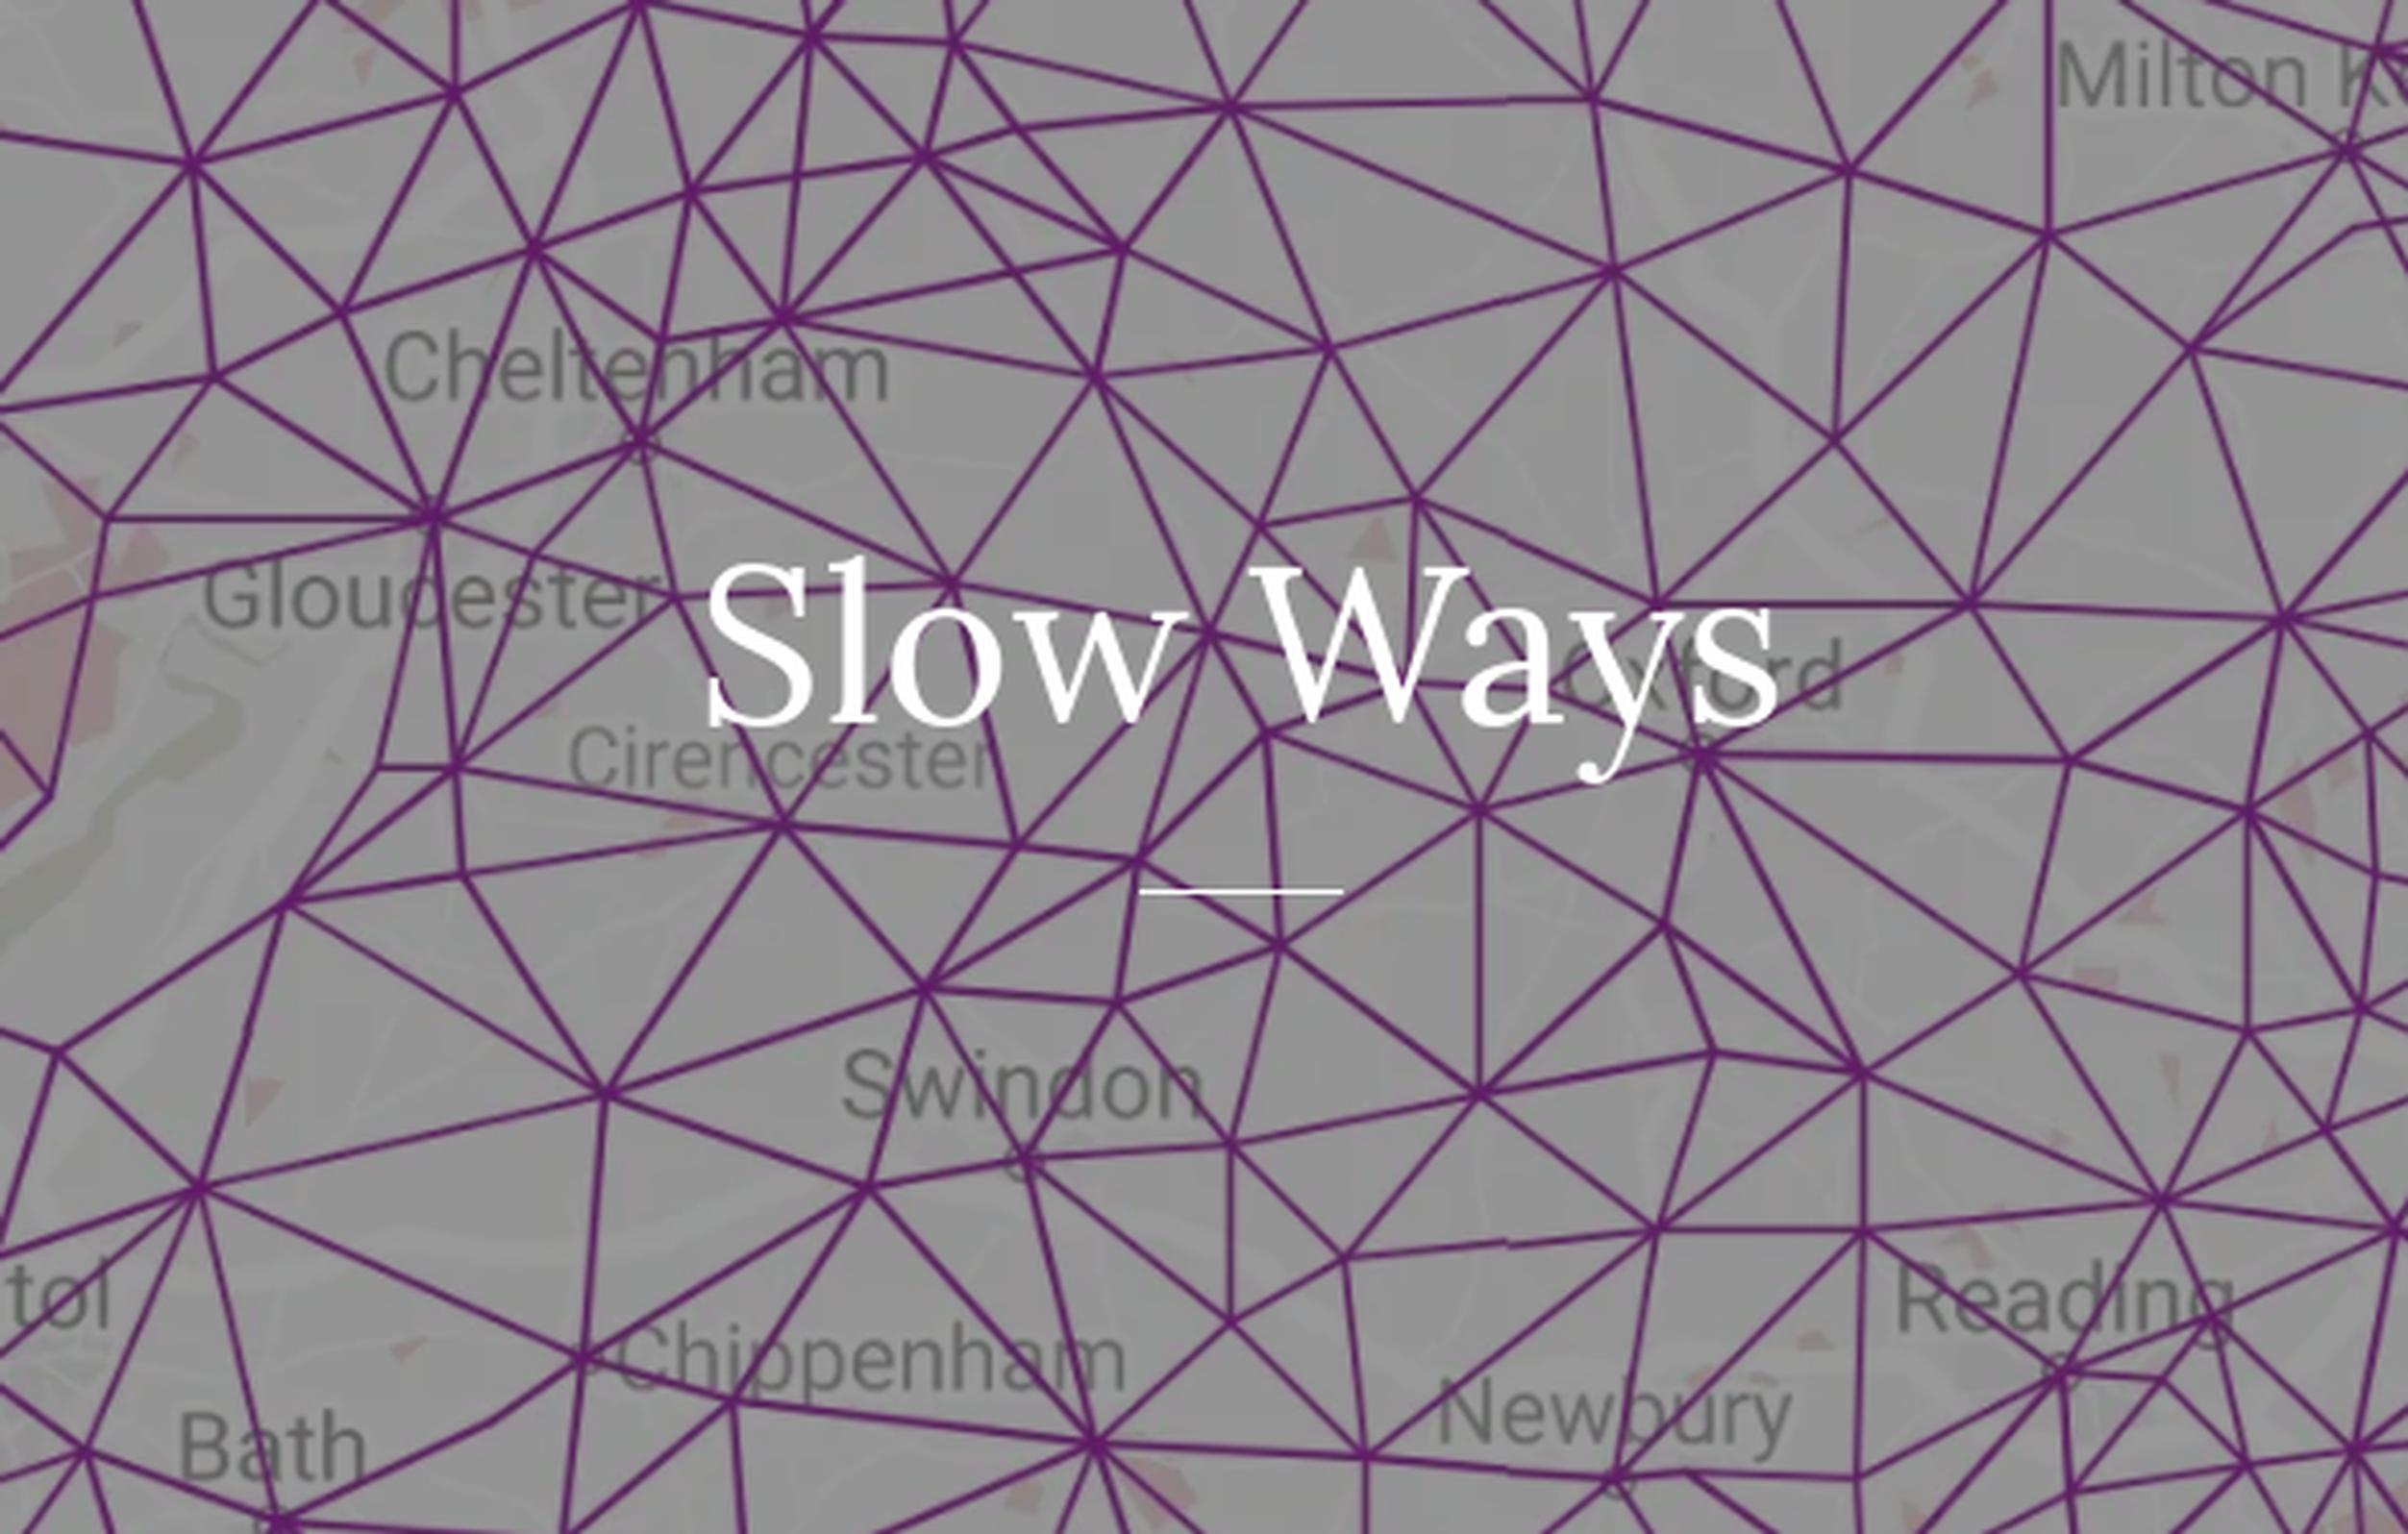 Slow Ways is a project to create a network of walking routes that connect all of Great Britain's towns and cities as well as thousands of villages: https://ravenellison.com/portfolio/slow-ways/